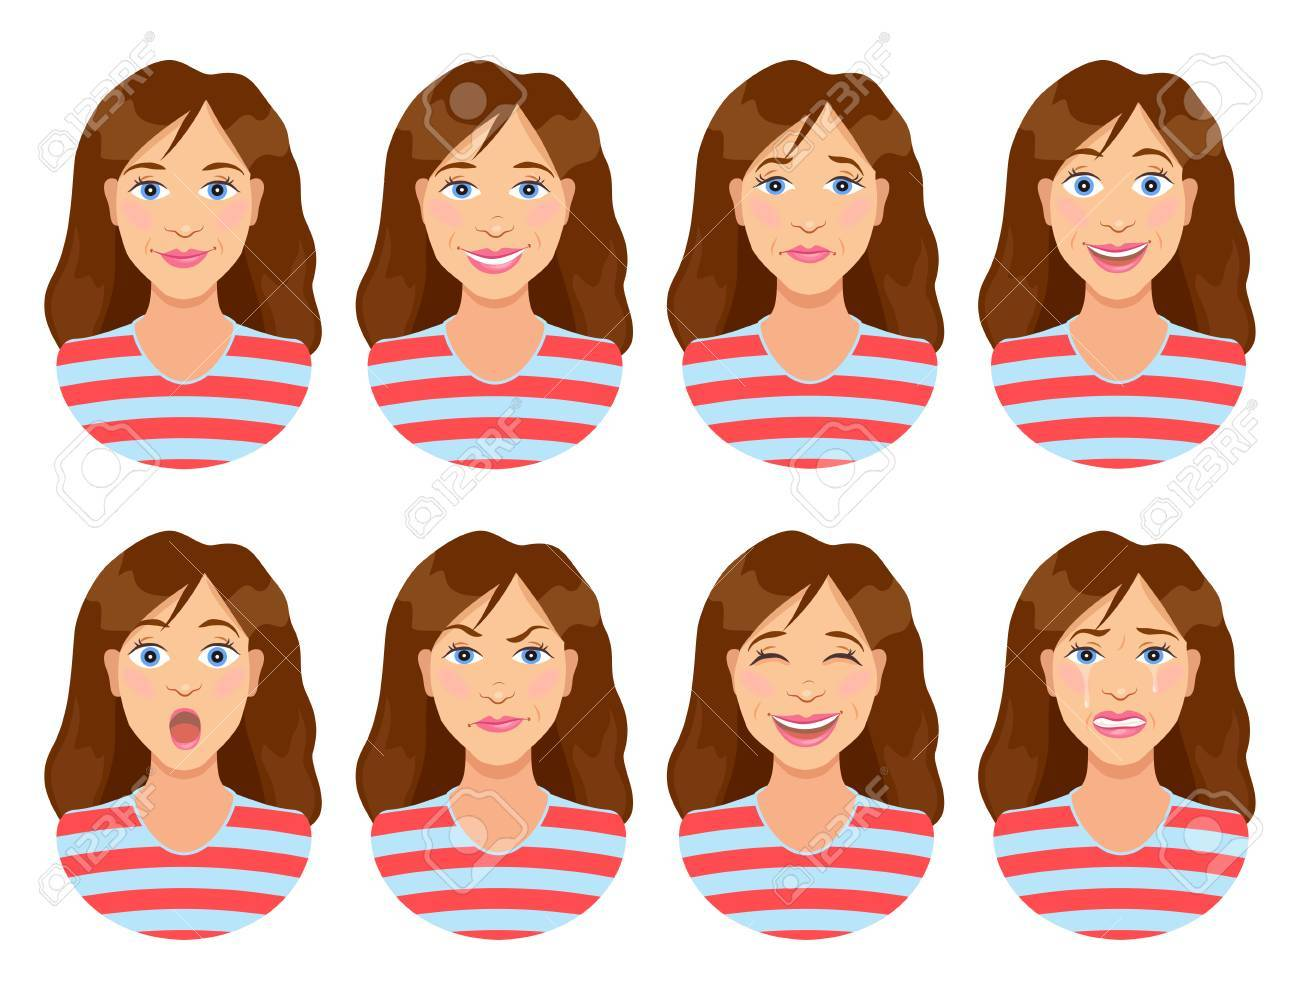 Women S Emotions Female Face Expression Calm Smile Sadness Royalty Free Cliparts Vectors And Stock Illustration Image 81150536